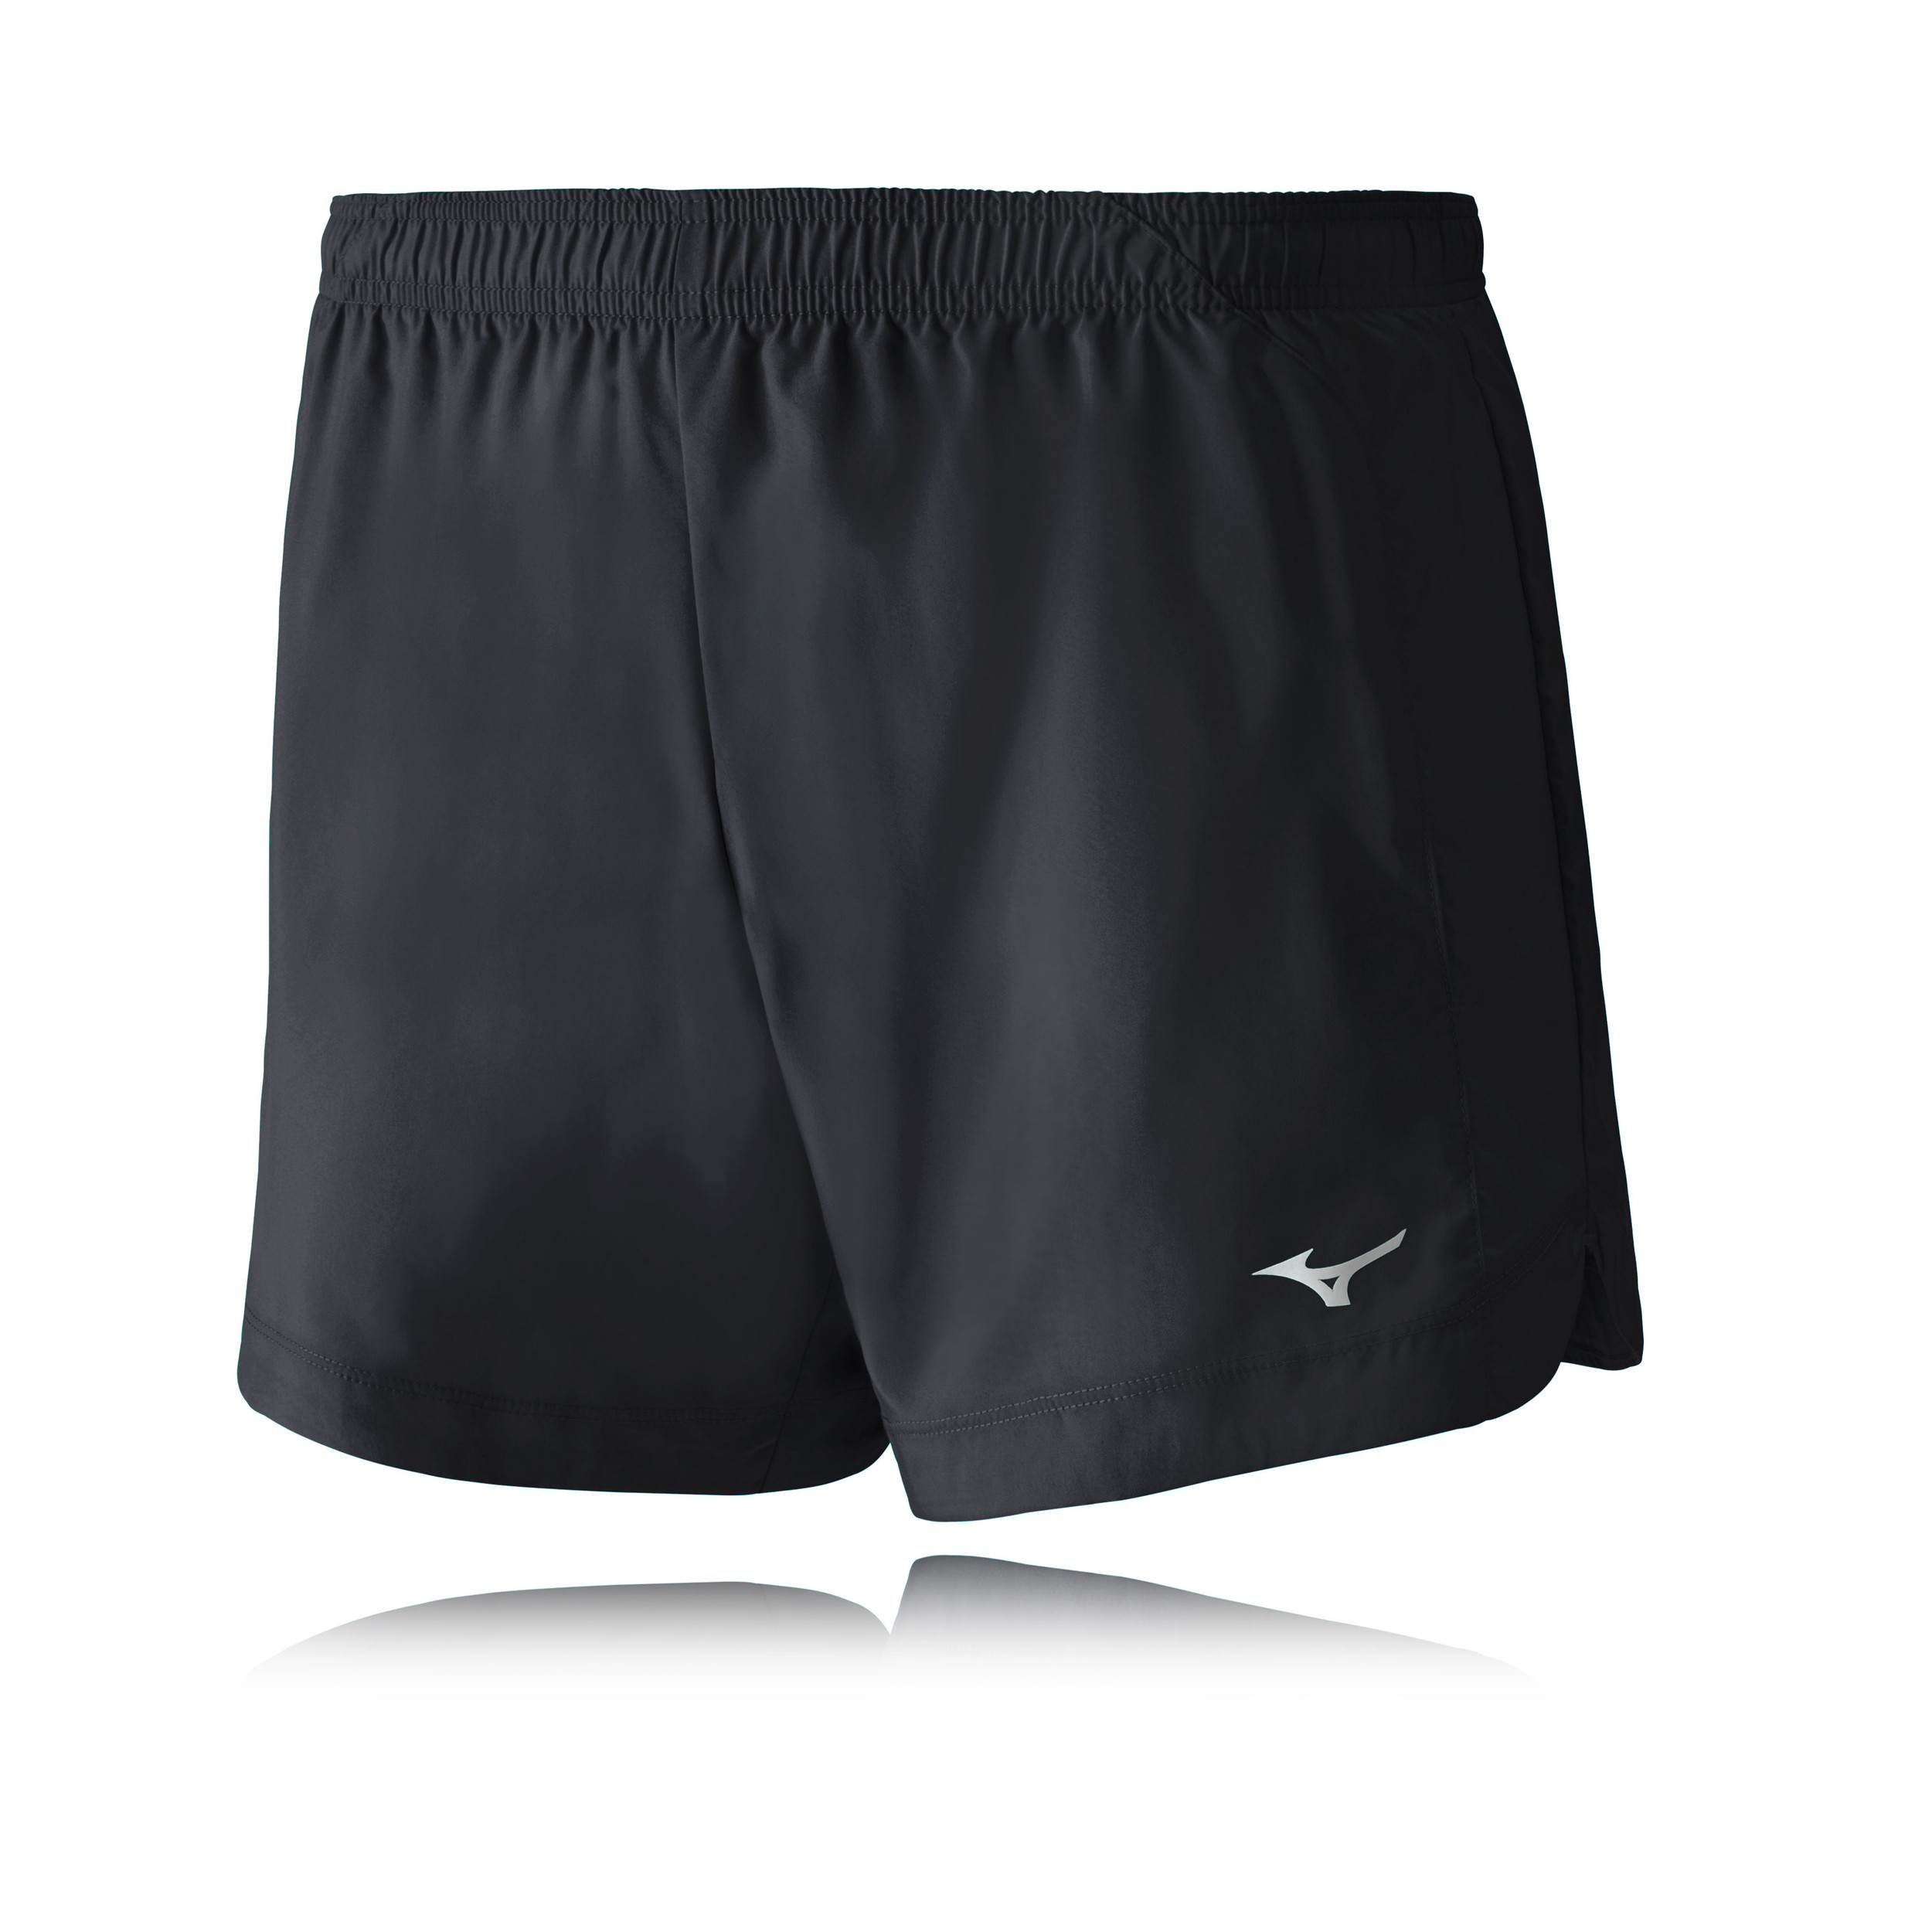 Details about Mizuno Core Square 5.5 Womens Black Outdoors Running Shorts Pants Bottoms